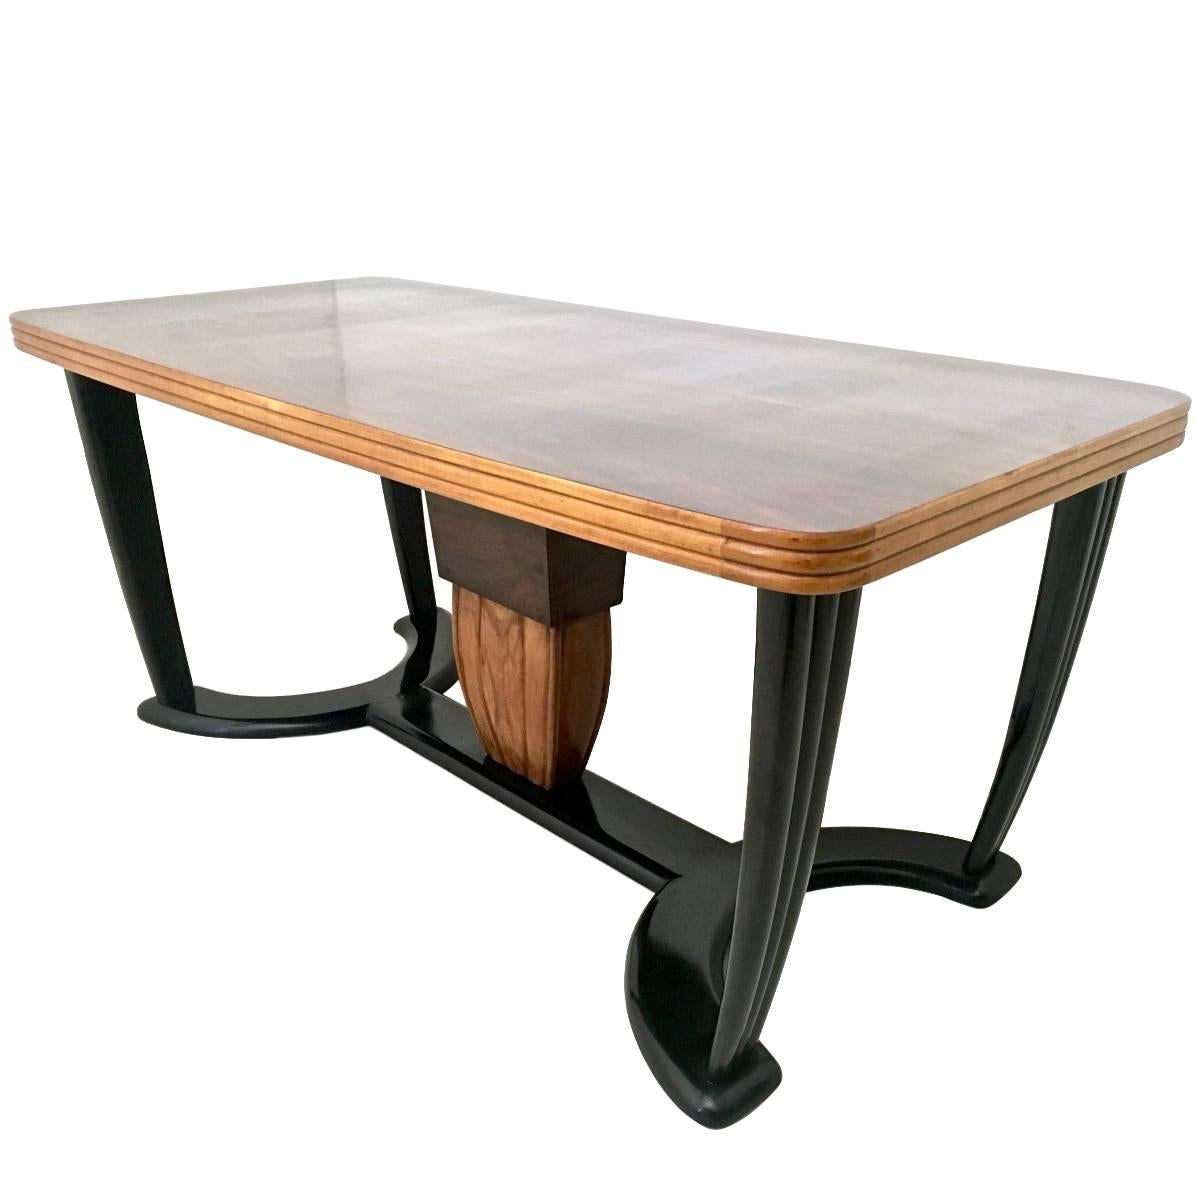 Wooden Dining Table with Black Opaline Glass Top, Italy, 1940s